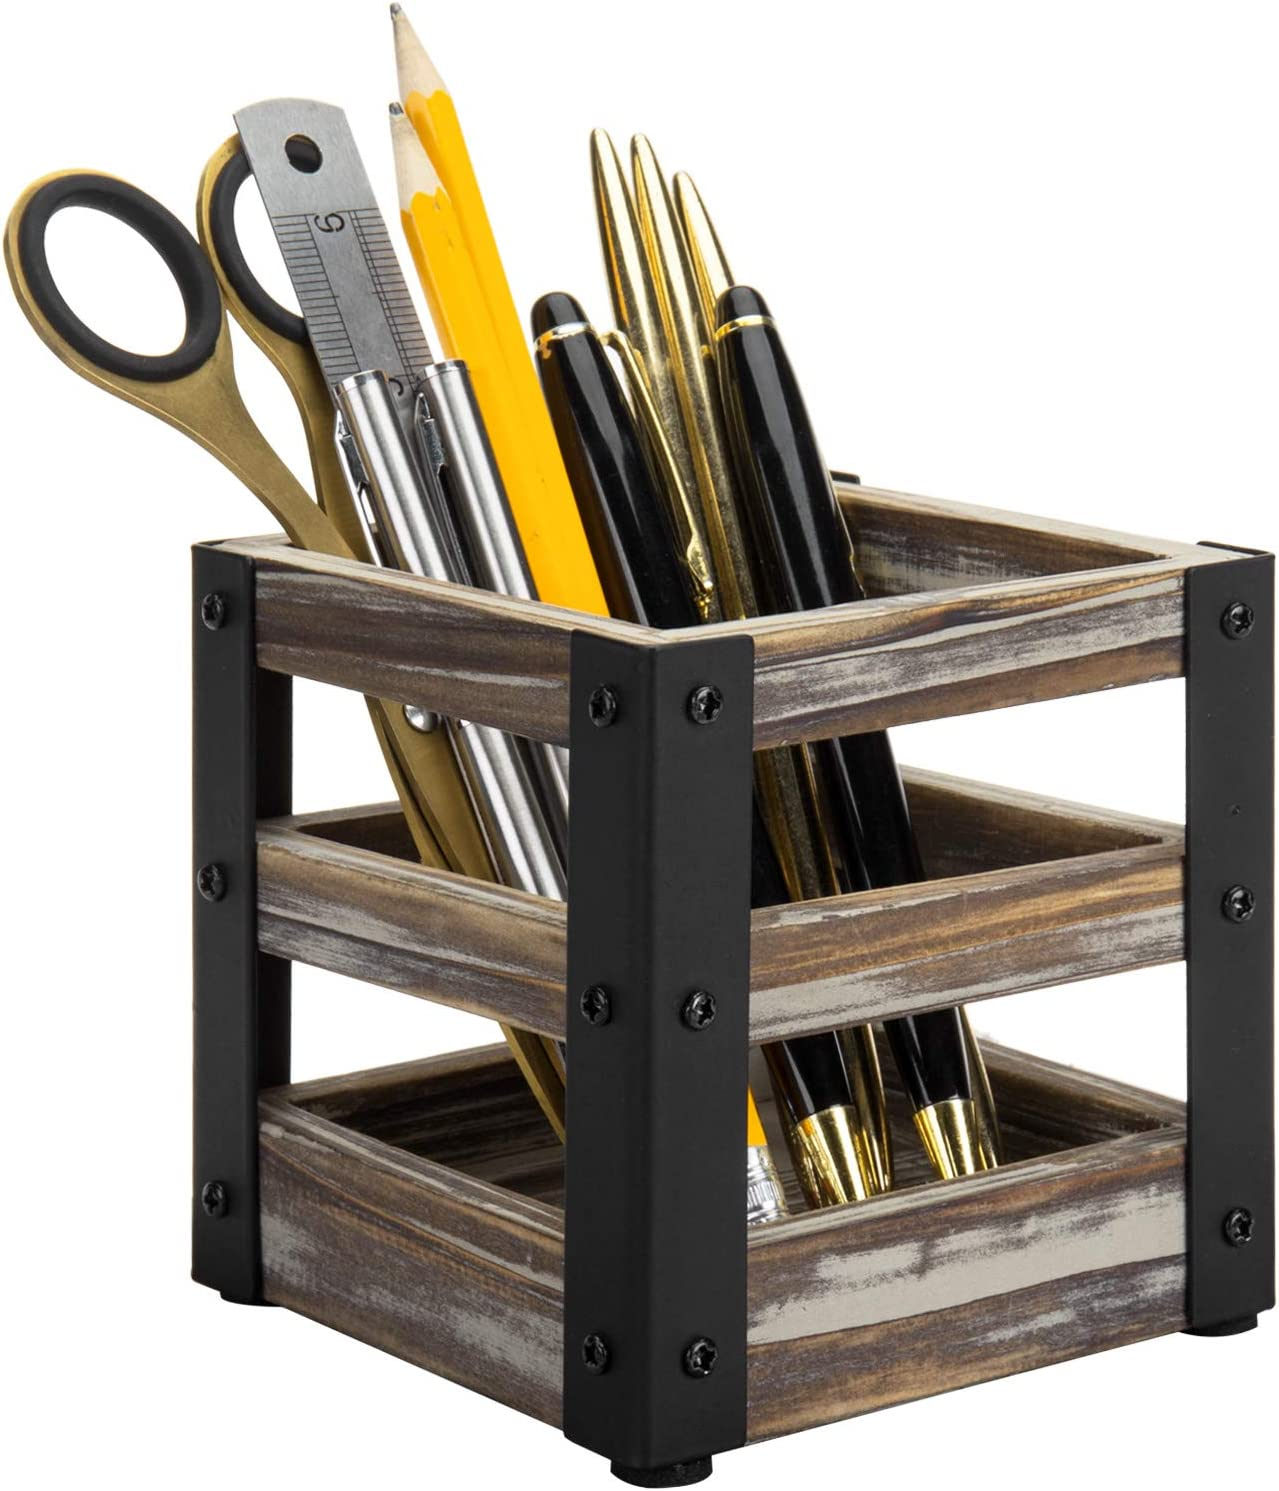 MyGift Rustic Torched Wood and Industrial Black Metal Pen/Pencil Holder Storage Cup, Office Desk Stationary Organizer Bin